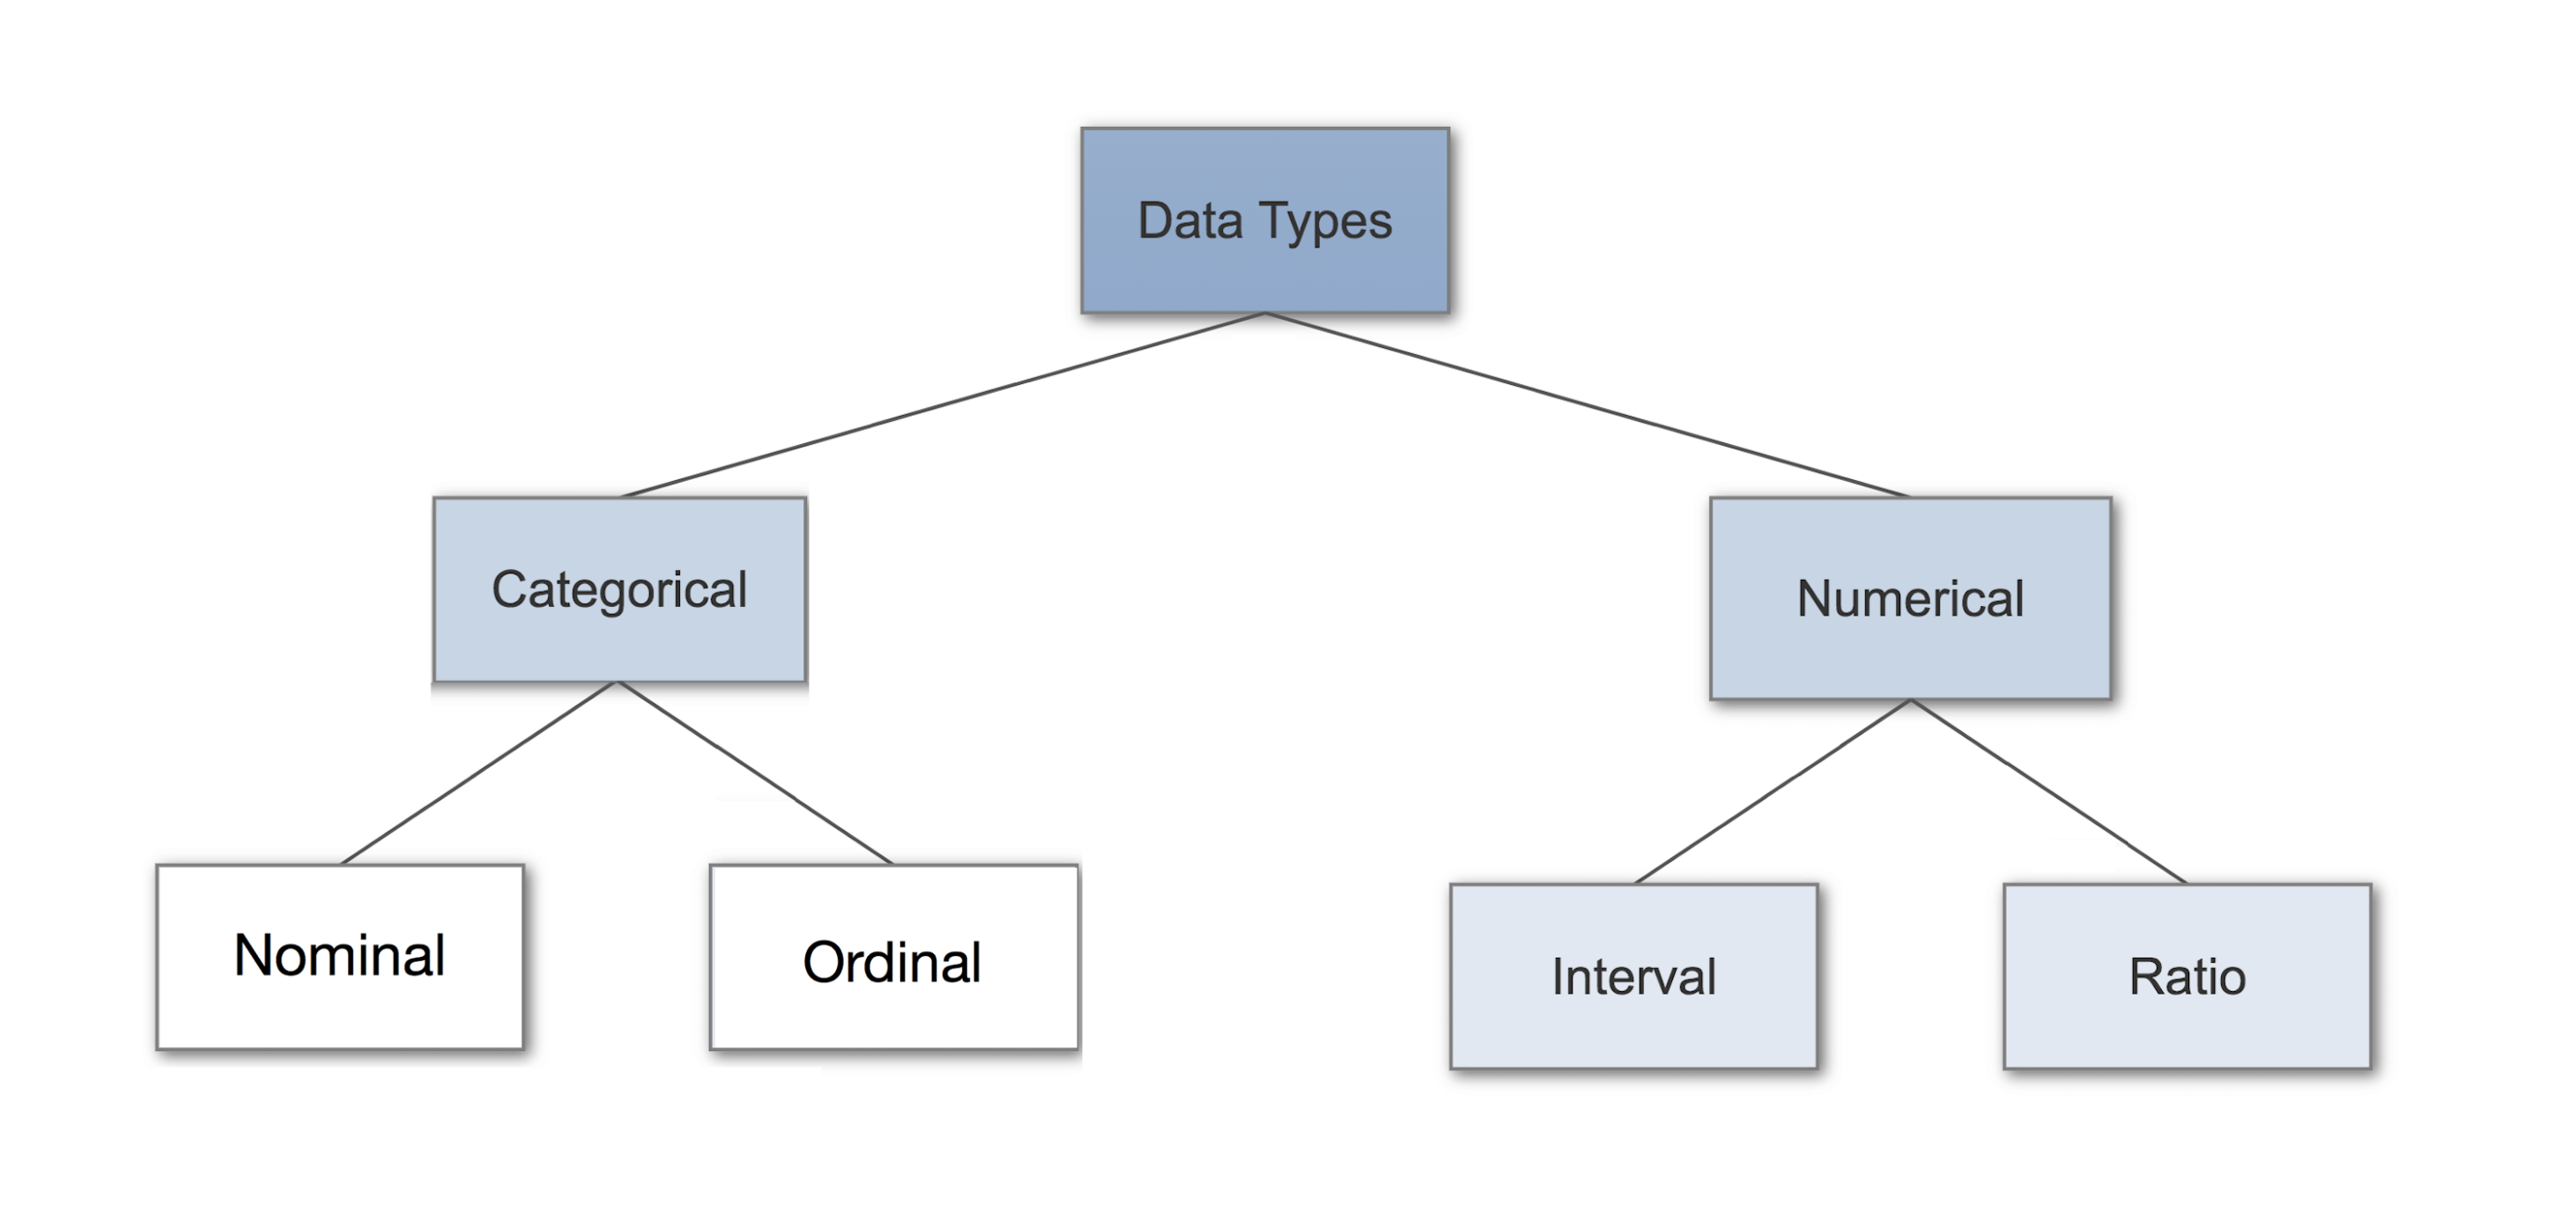 Data Types In Statistics Data Types Are An Important